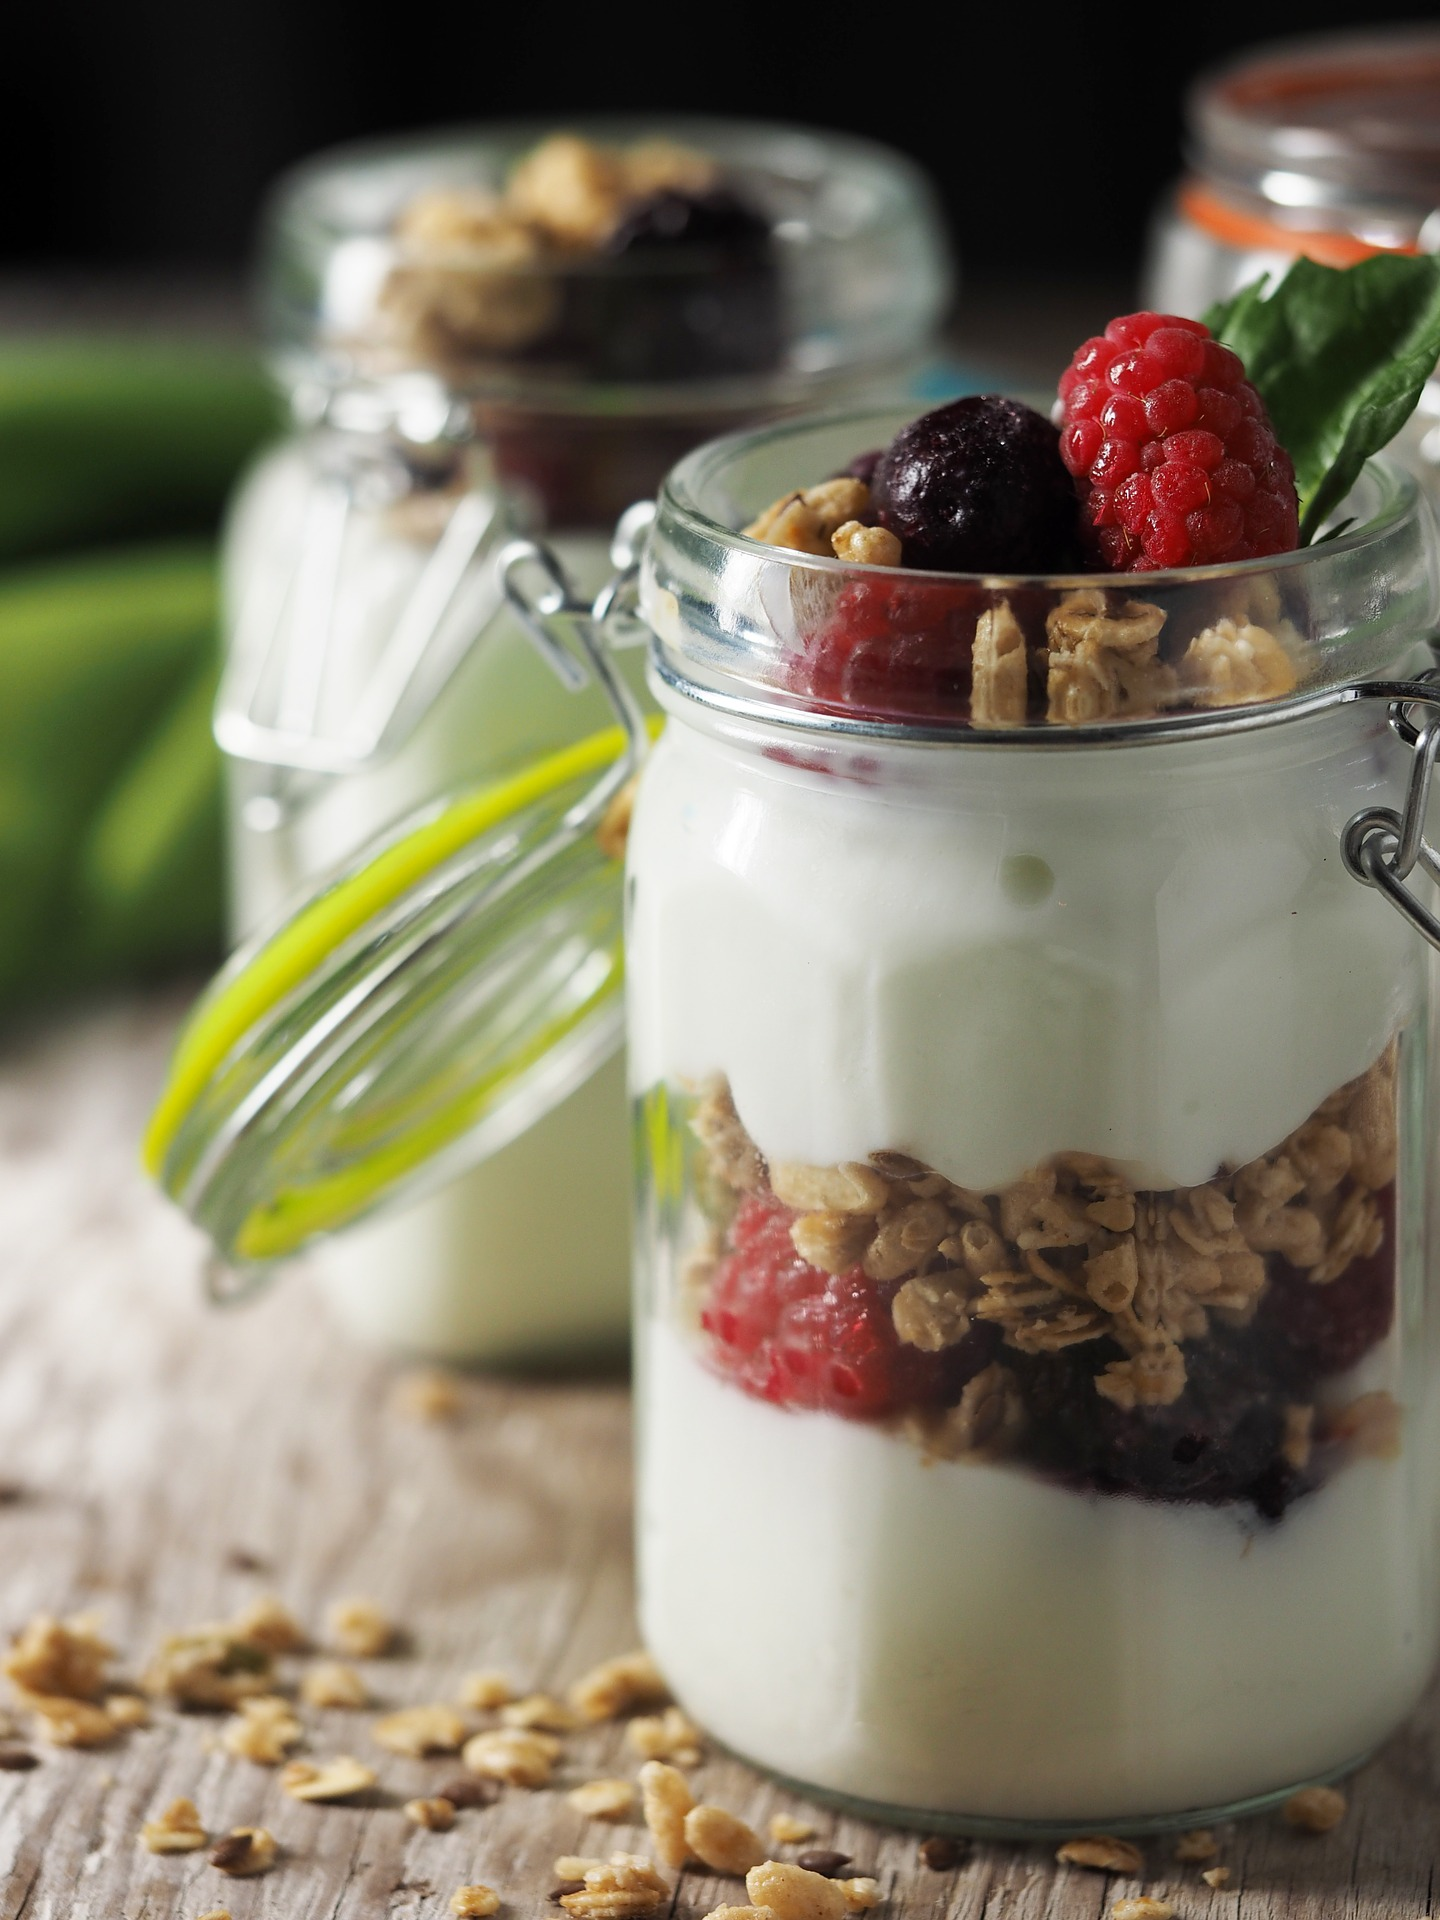 Lemon-Berry Greek Yogurt Parfait